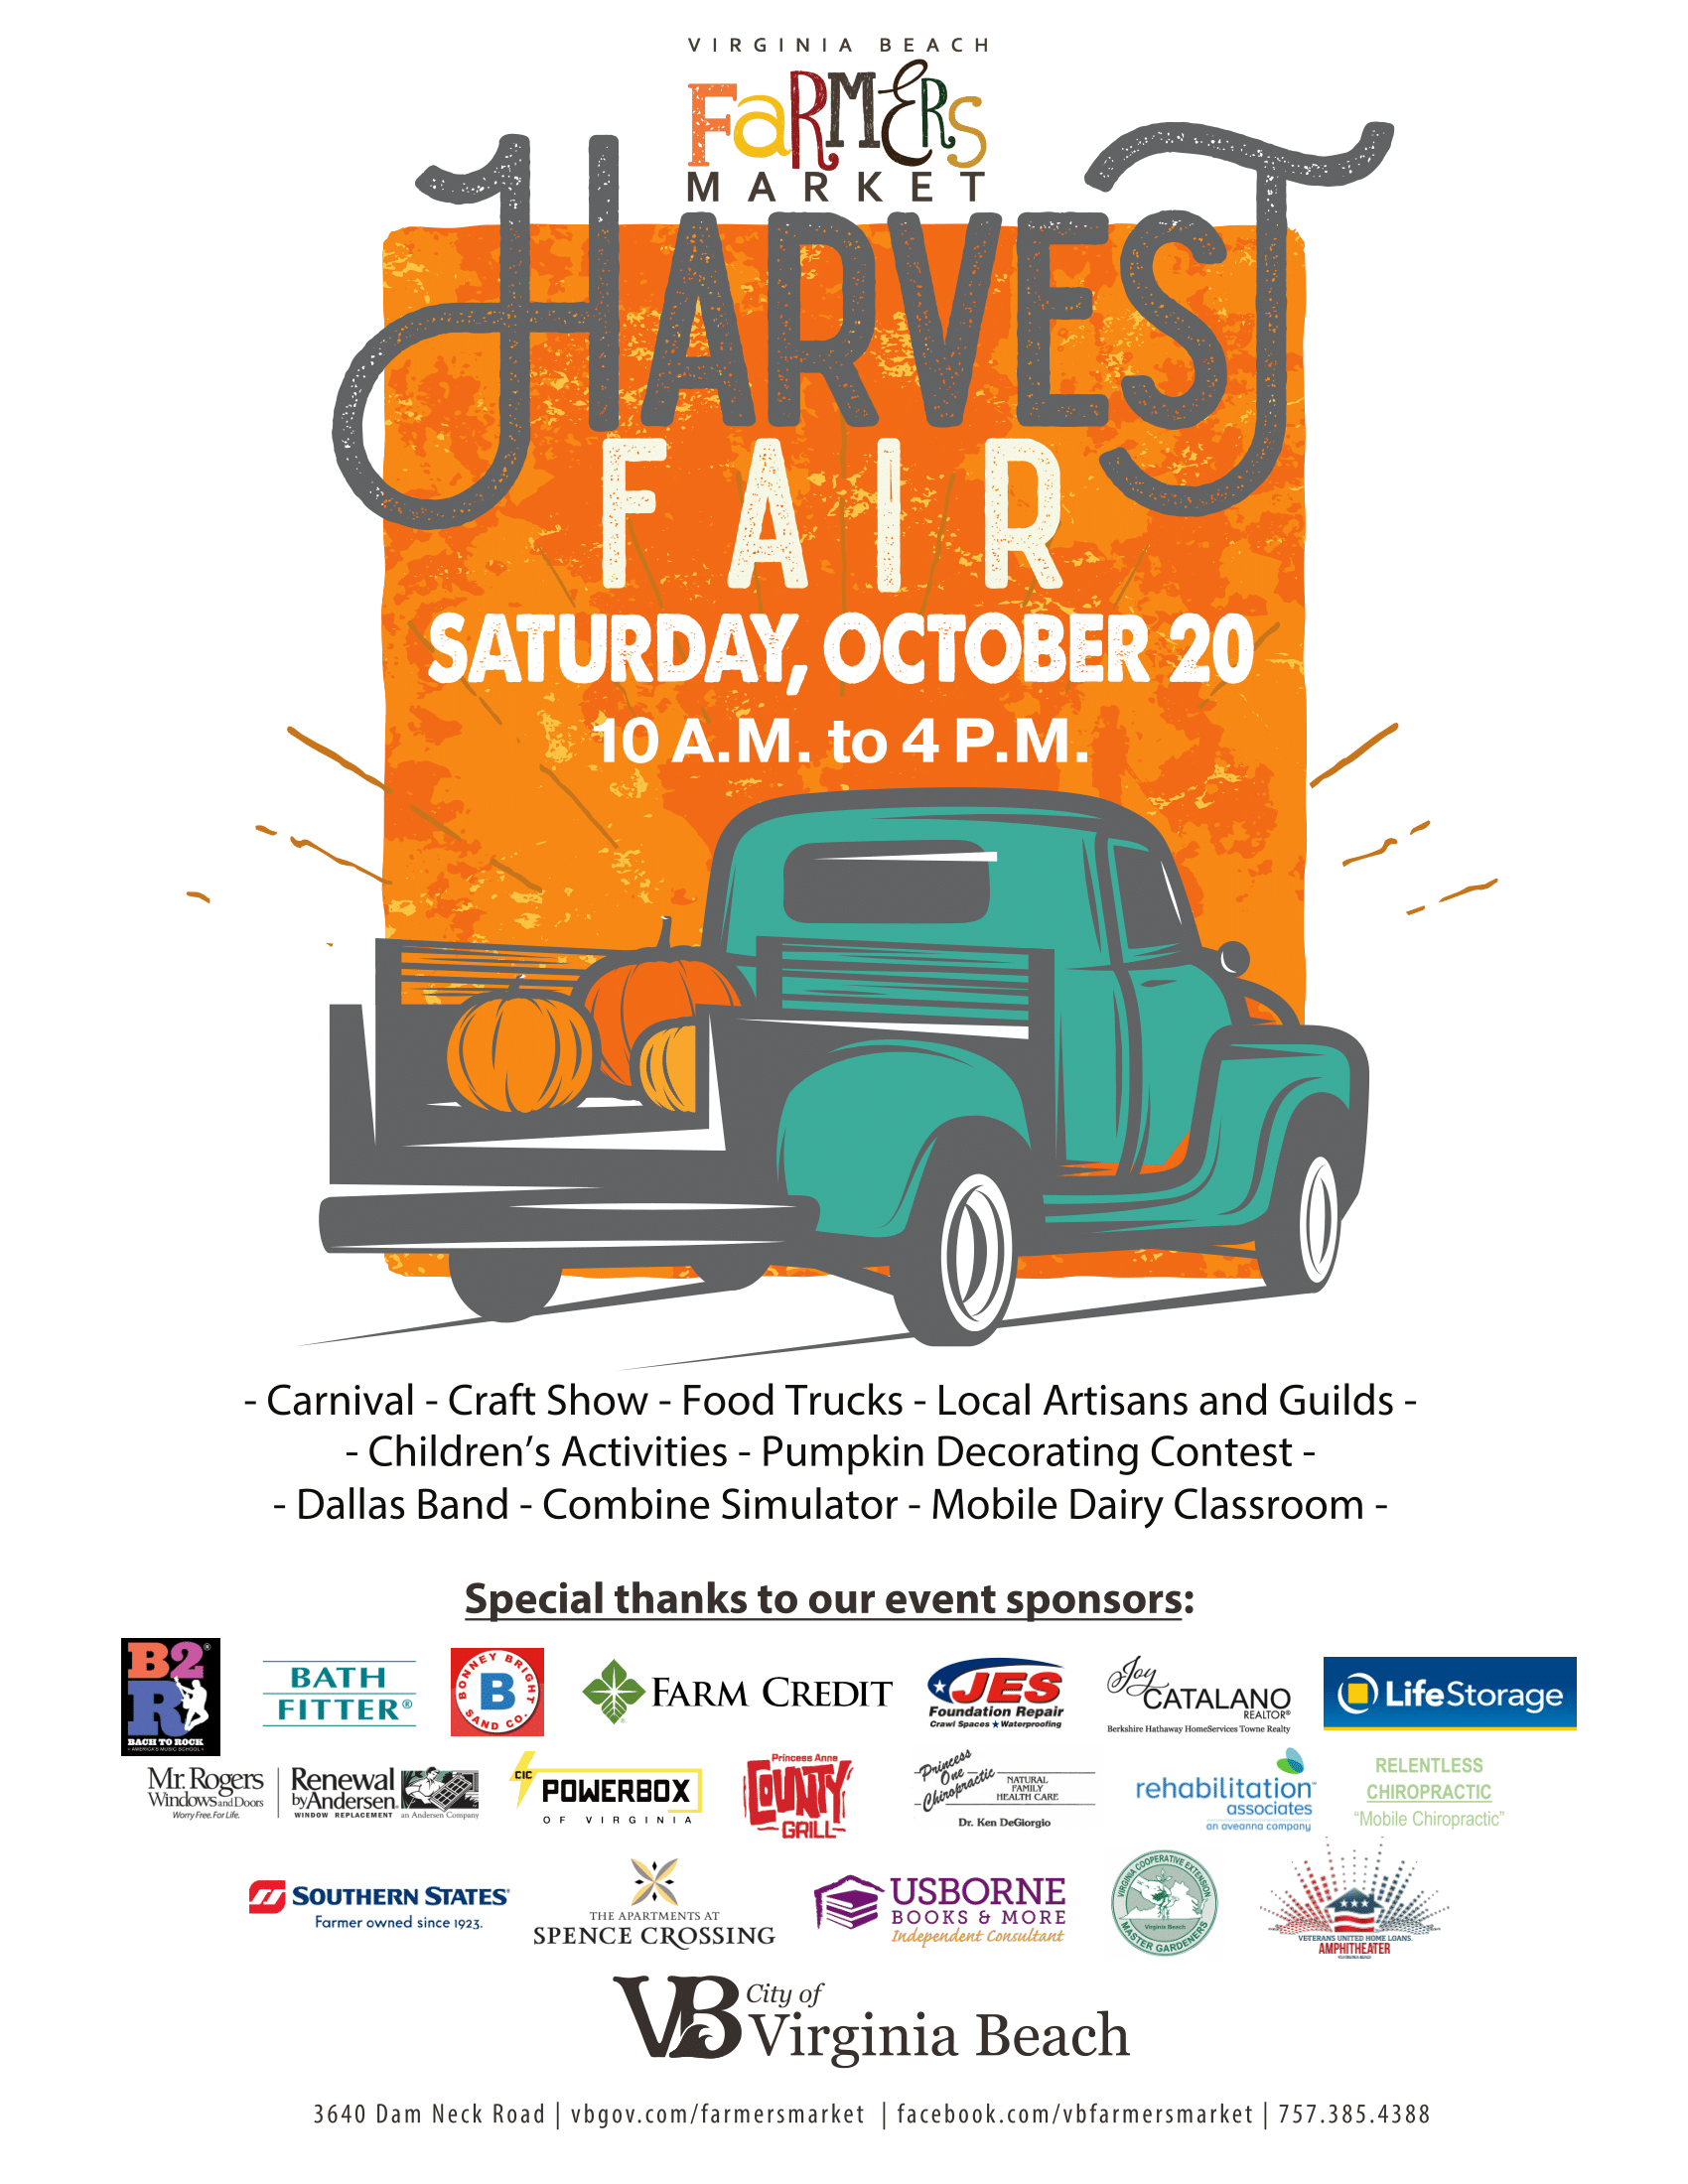 Harvest Fair  October 20th, 10 am to 4 pm. Carnivla, craft shoe, food trucks, and more!